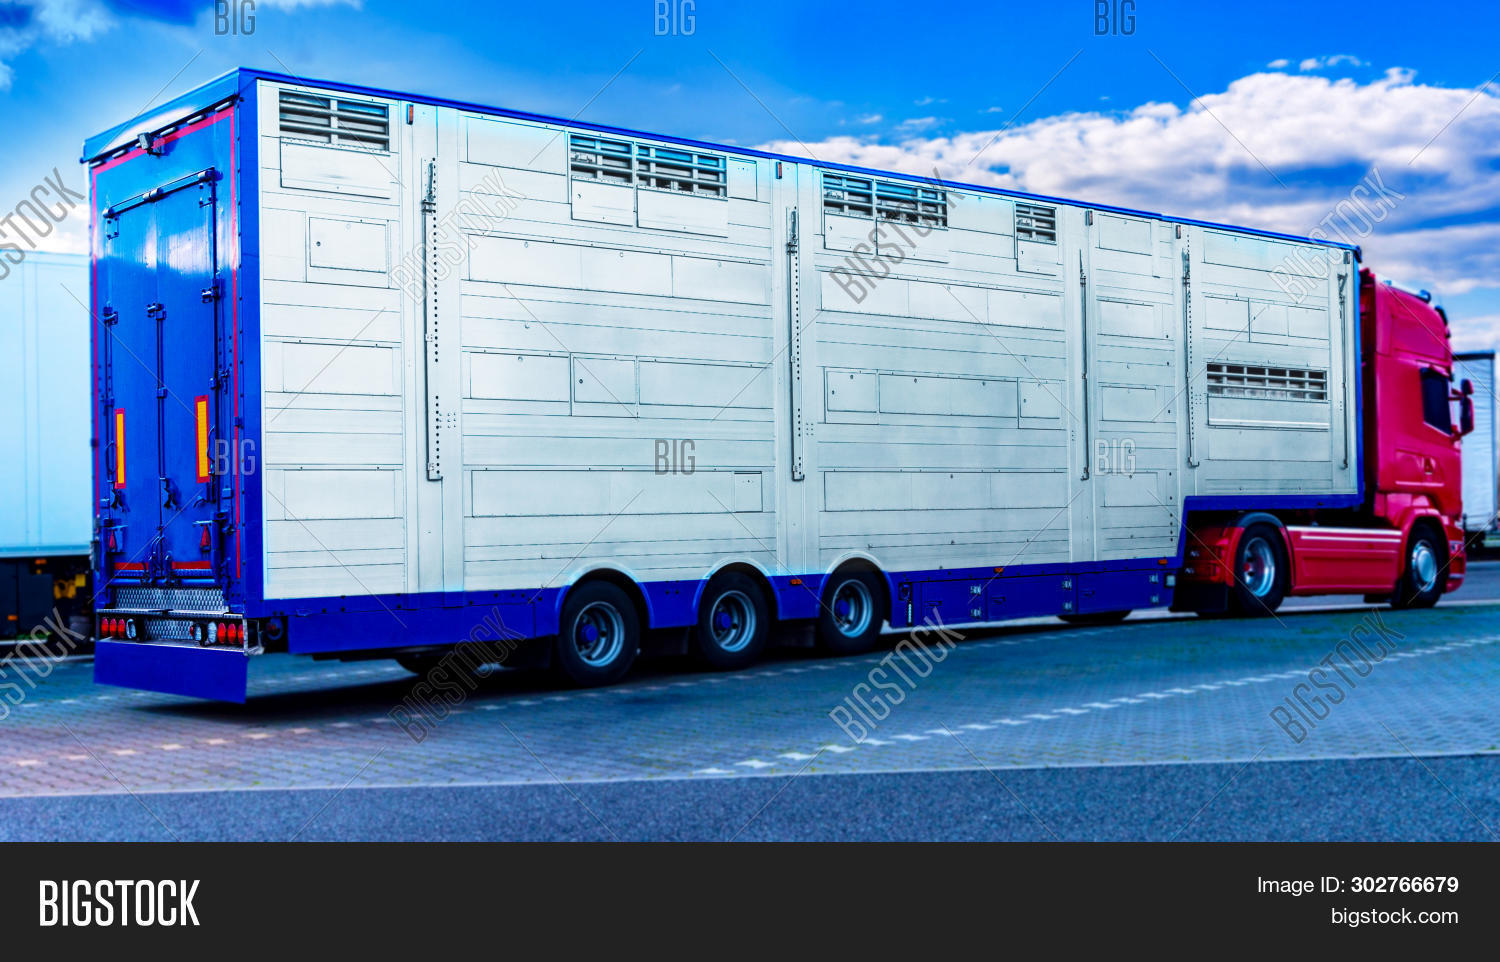 A Trailer Animal Transport . Special Truck And Trailer For Transportation Of Pigs . Transport Of Liv